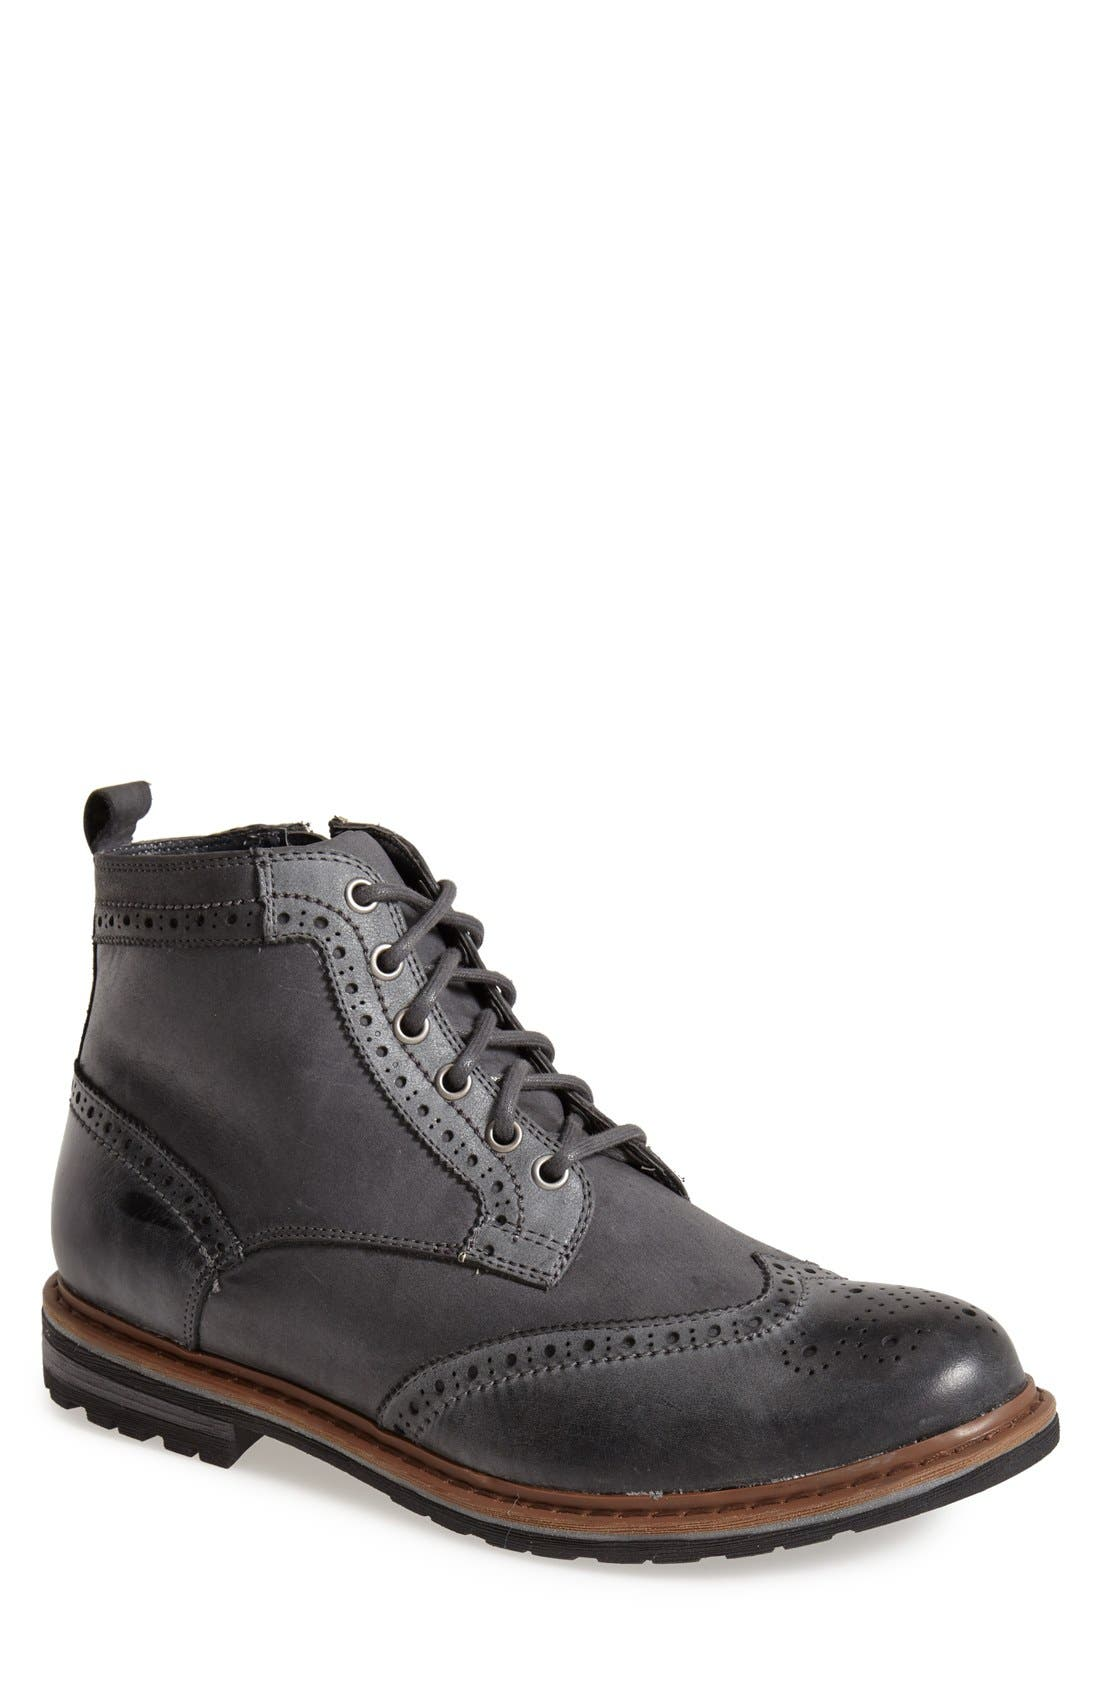 'Damien' Waterproof Wingtip Boot,                             Main thumbnail 1, color,